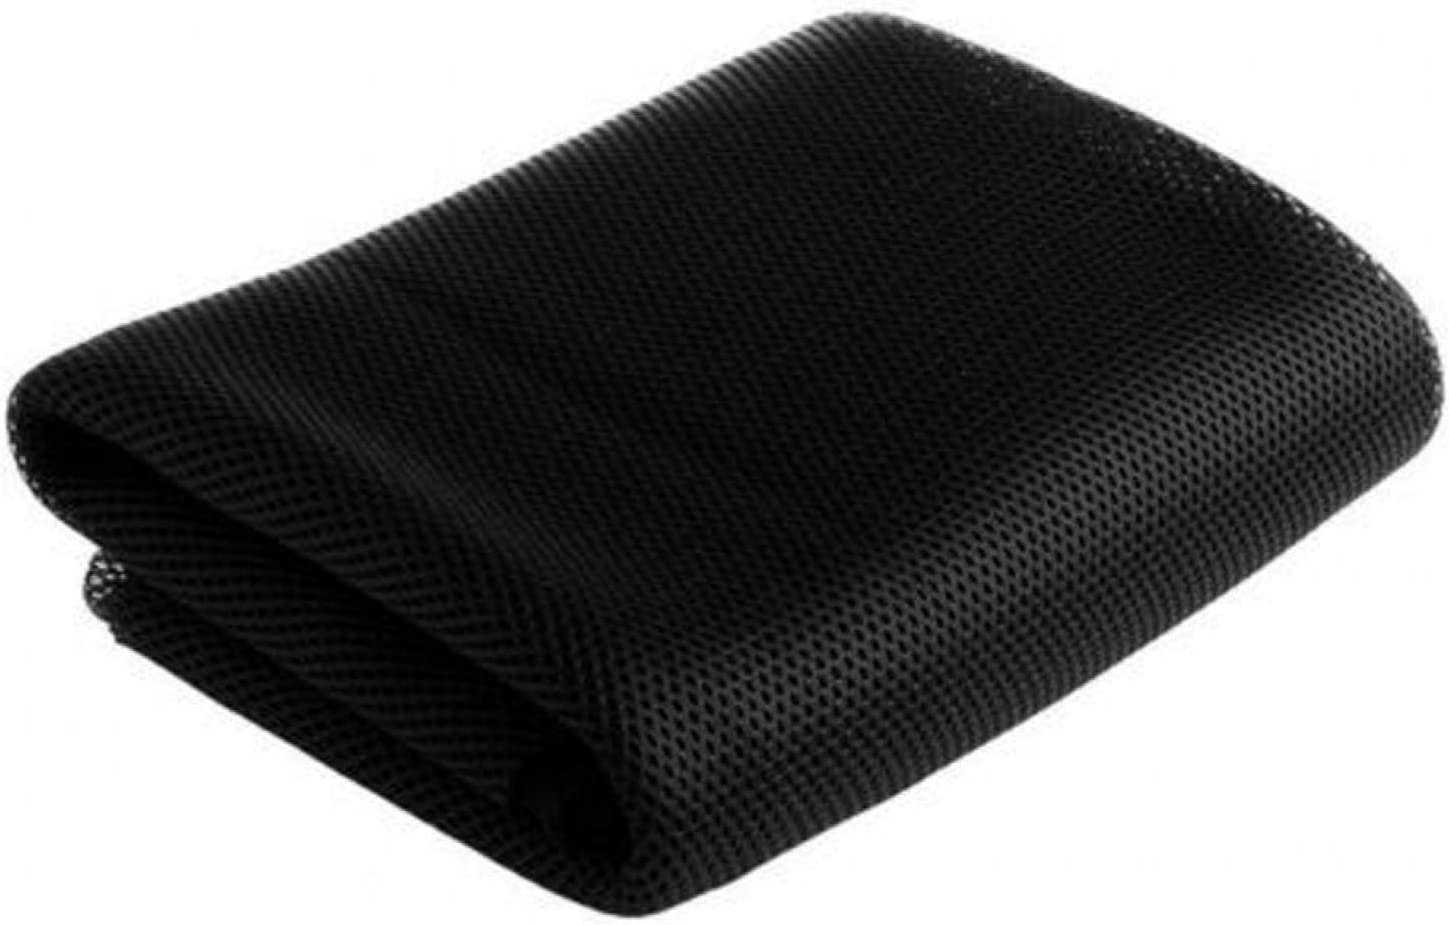 CALIDAKA Speaker Mesh Cloth, 140 X 50cm Speaker Grill Cloth Stereo Fabric Speaker Mesh Cloth Dustproof Protective Cover Replacement Applicable to Speakers/Stage Speakers/KTV(Black) : Electronics